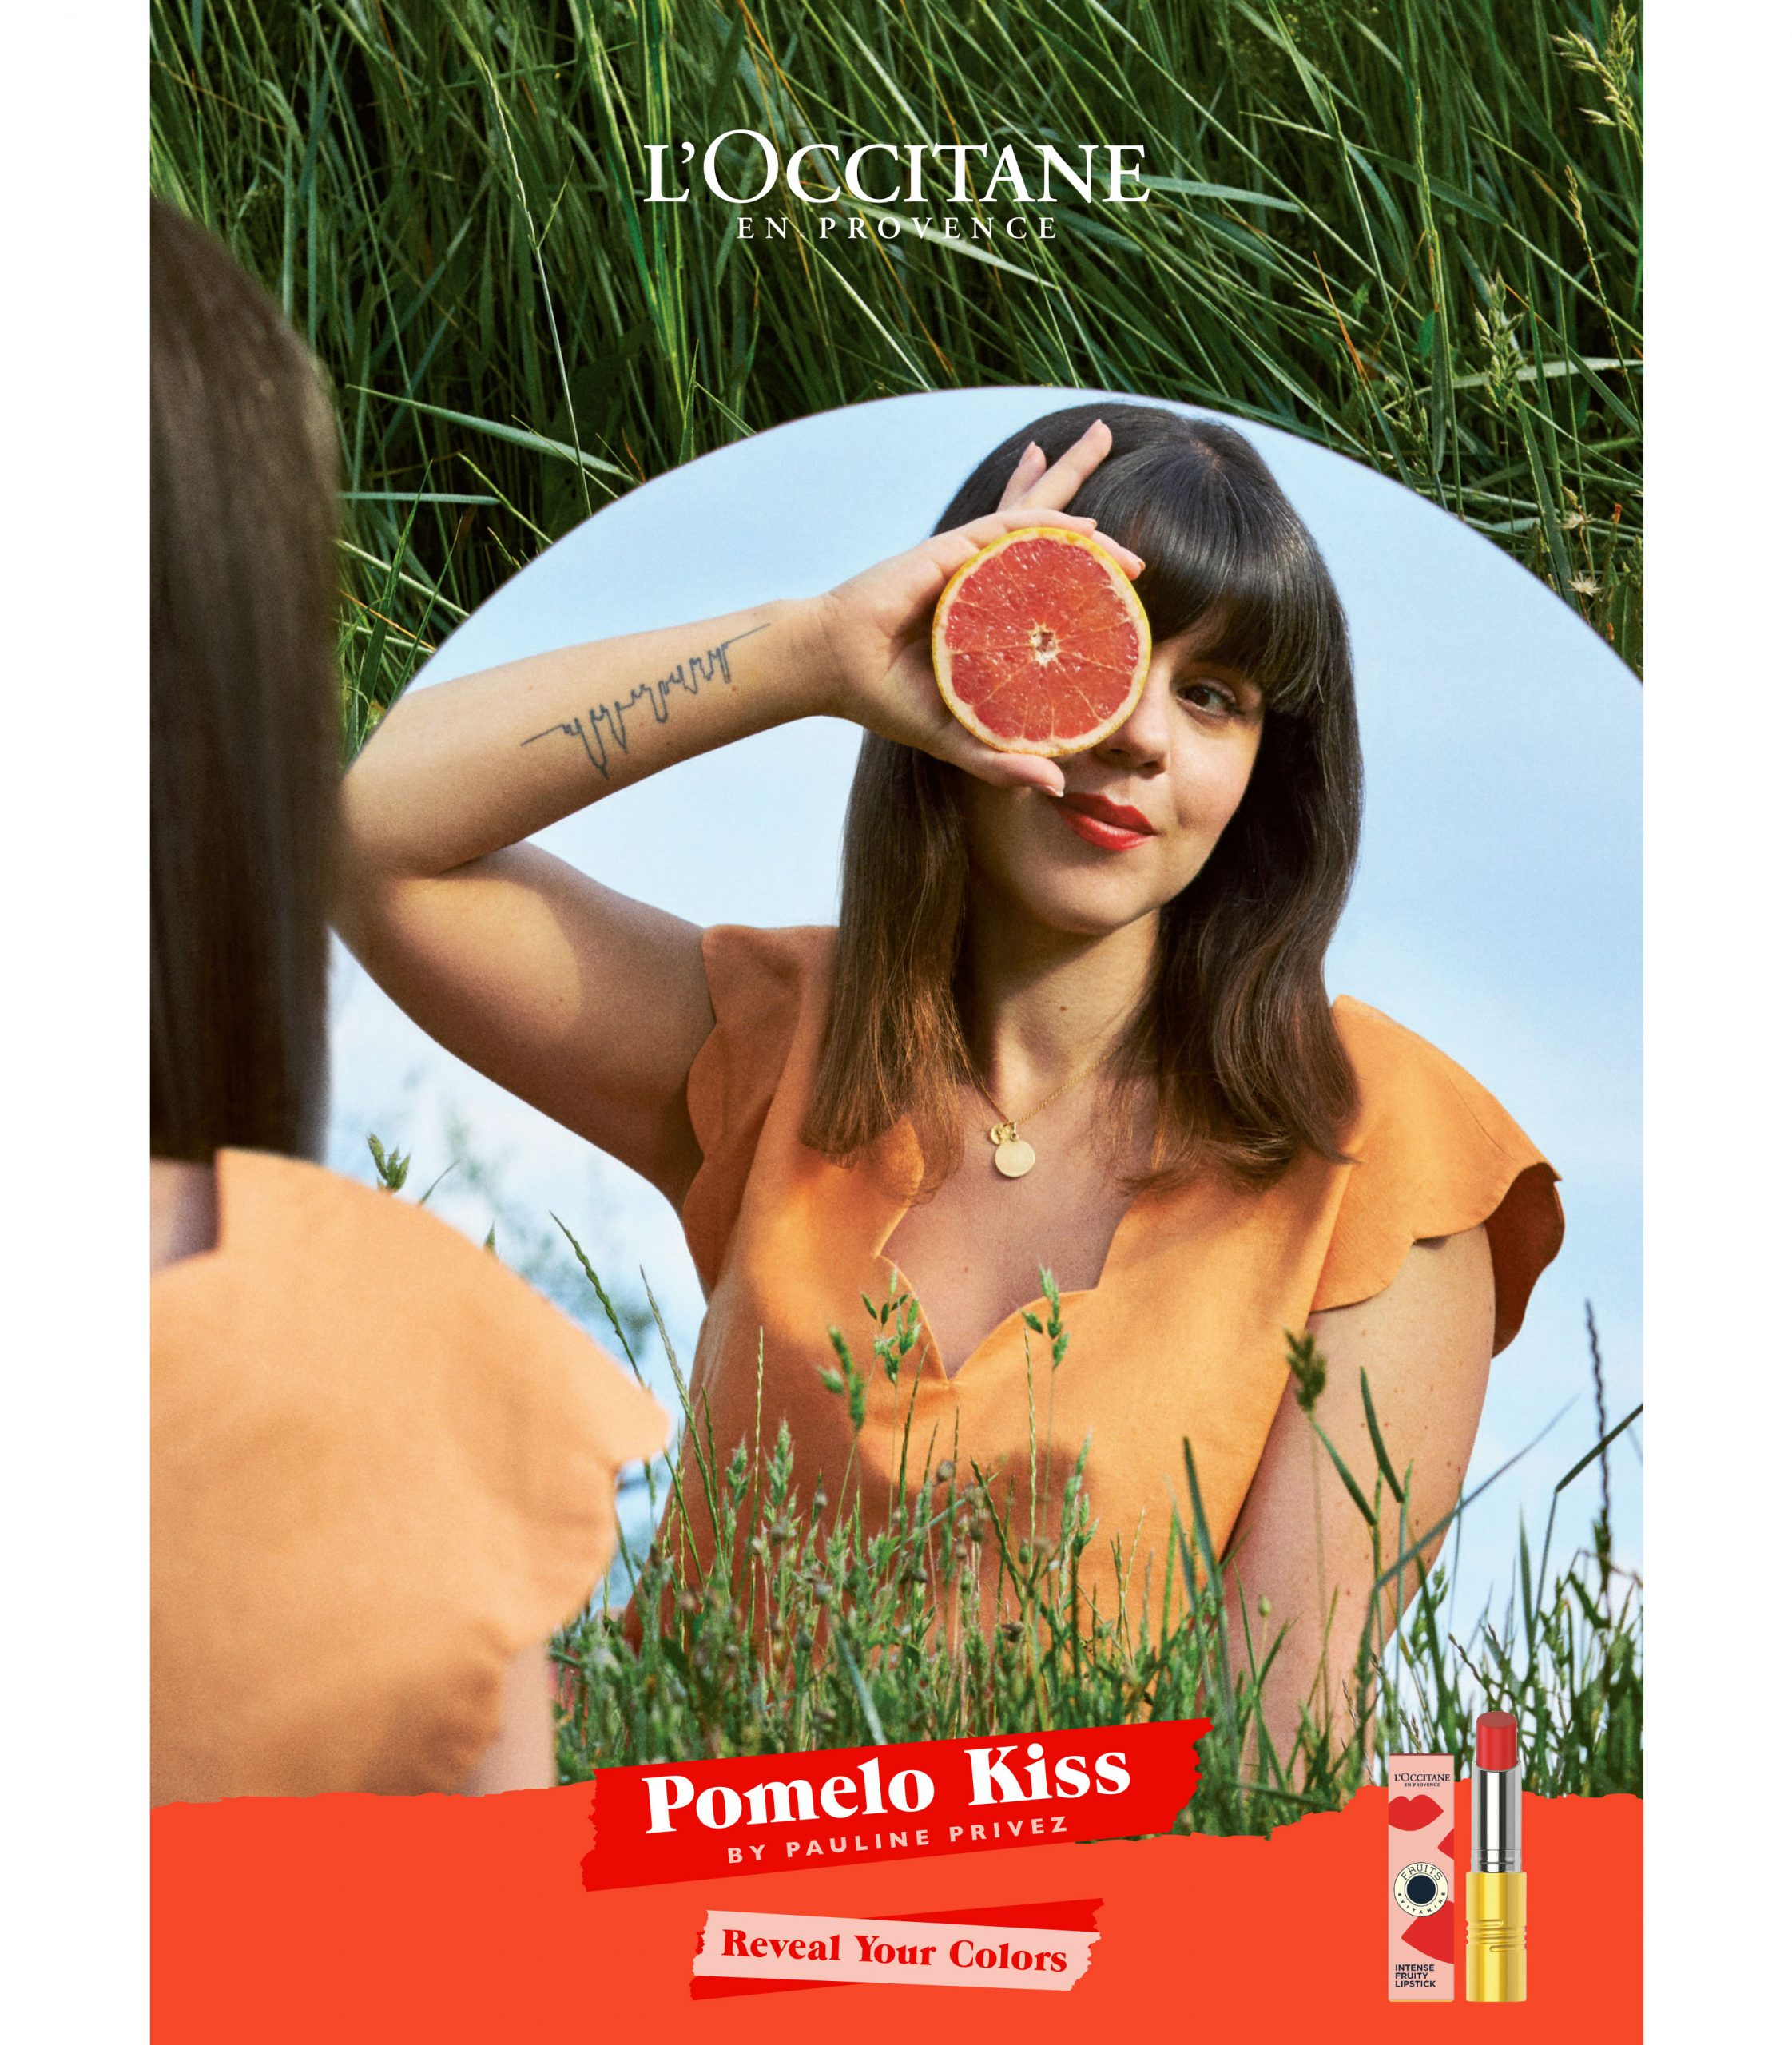 L'Occitane reveal your colors pomelo kiss pauline privez